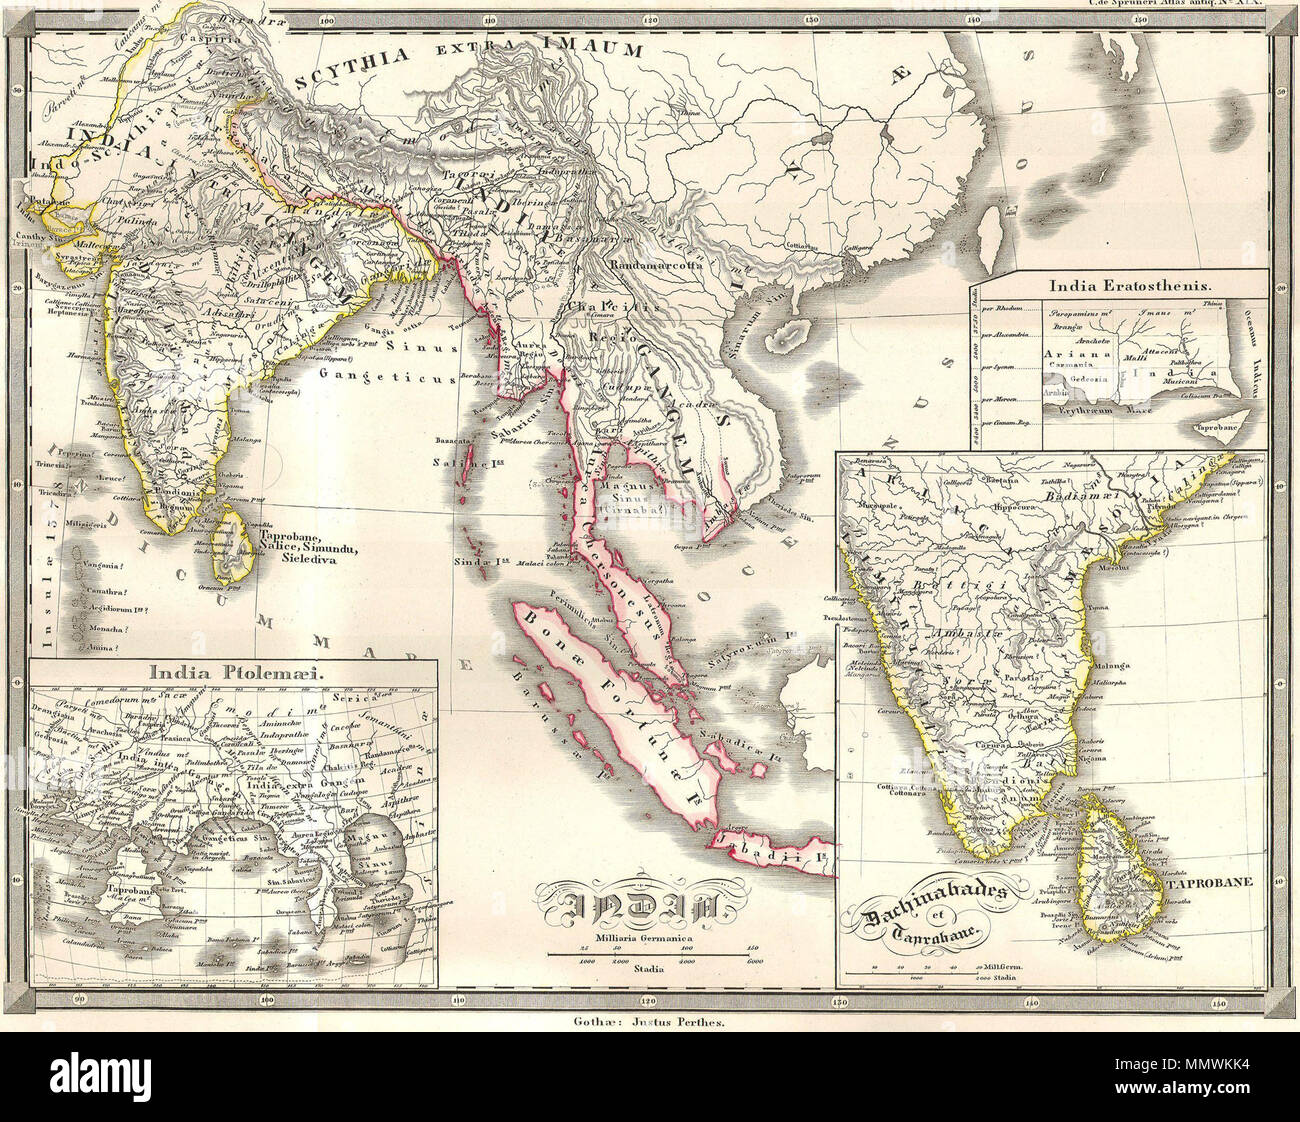 Map Of Asia Over Time.Spruneri Map Of India And Southeast Asia In Ancient Times Stock